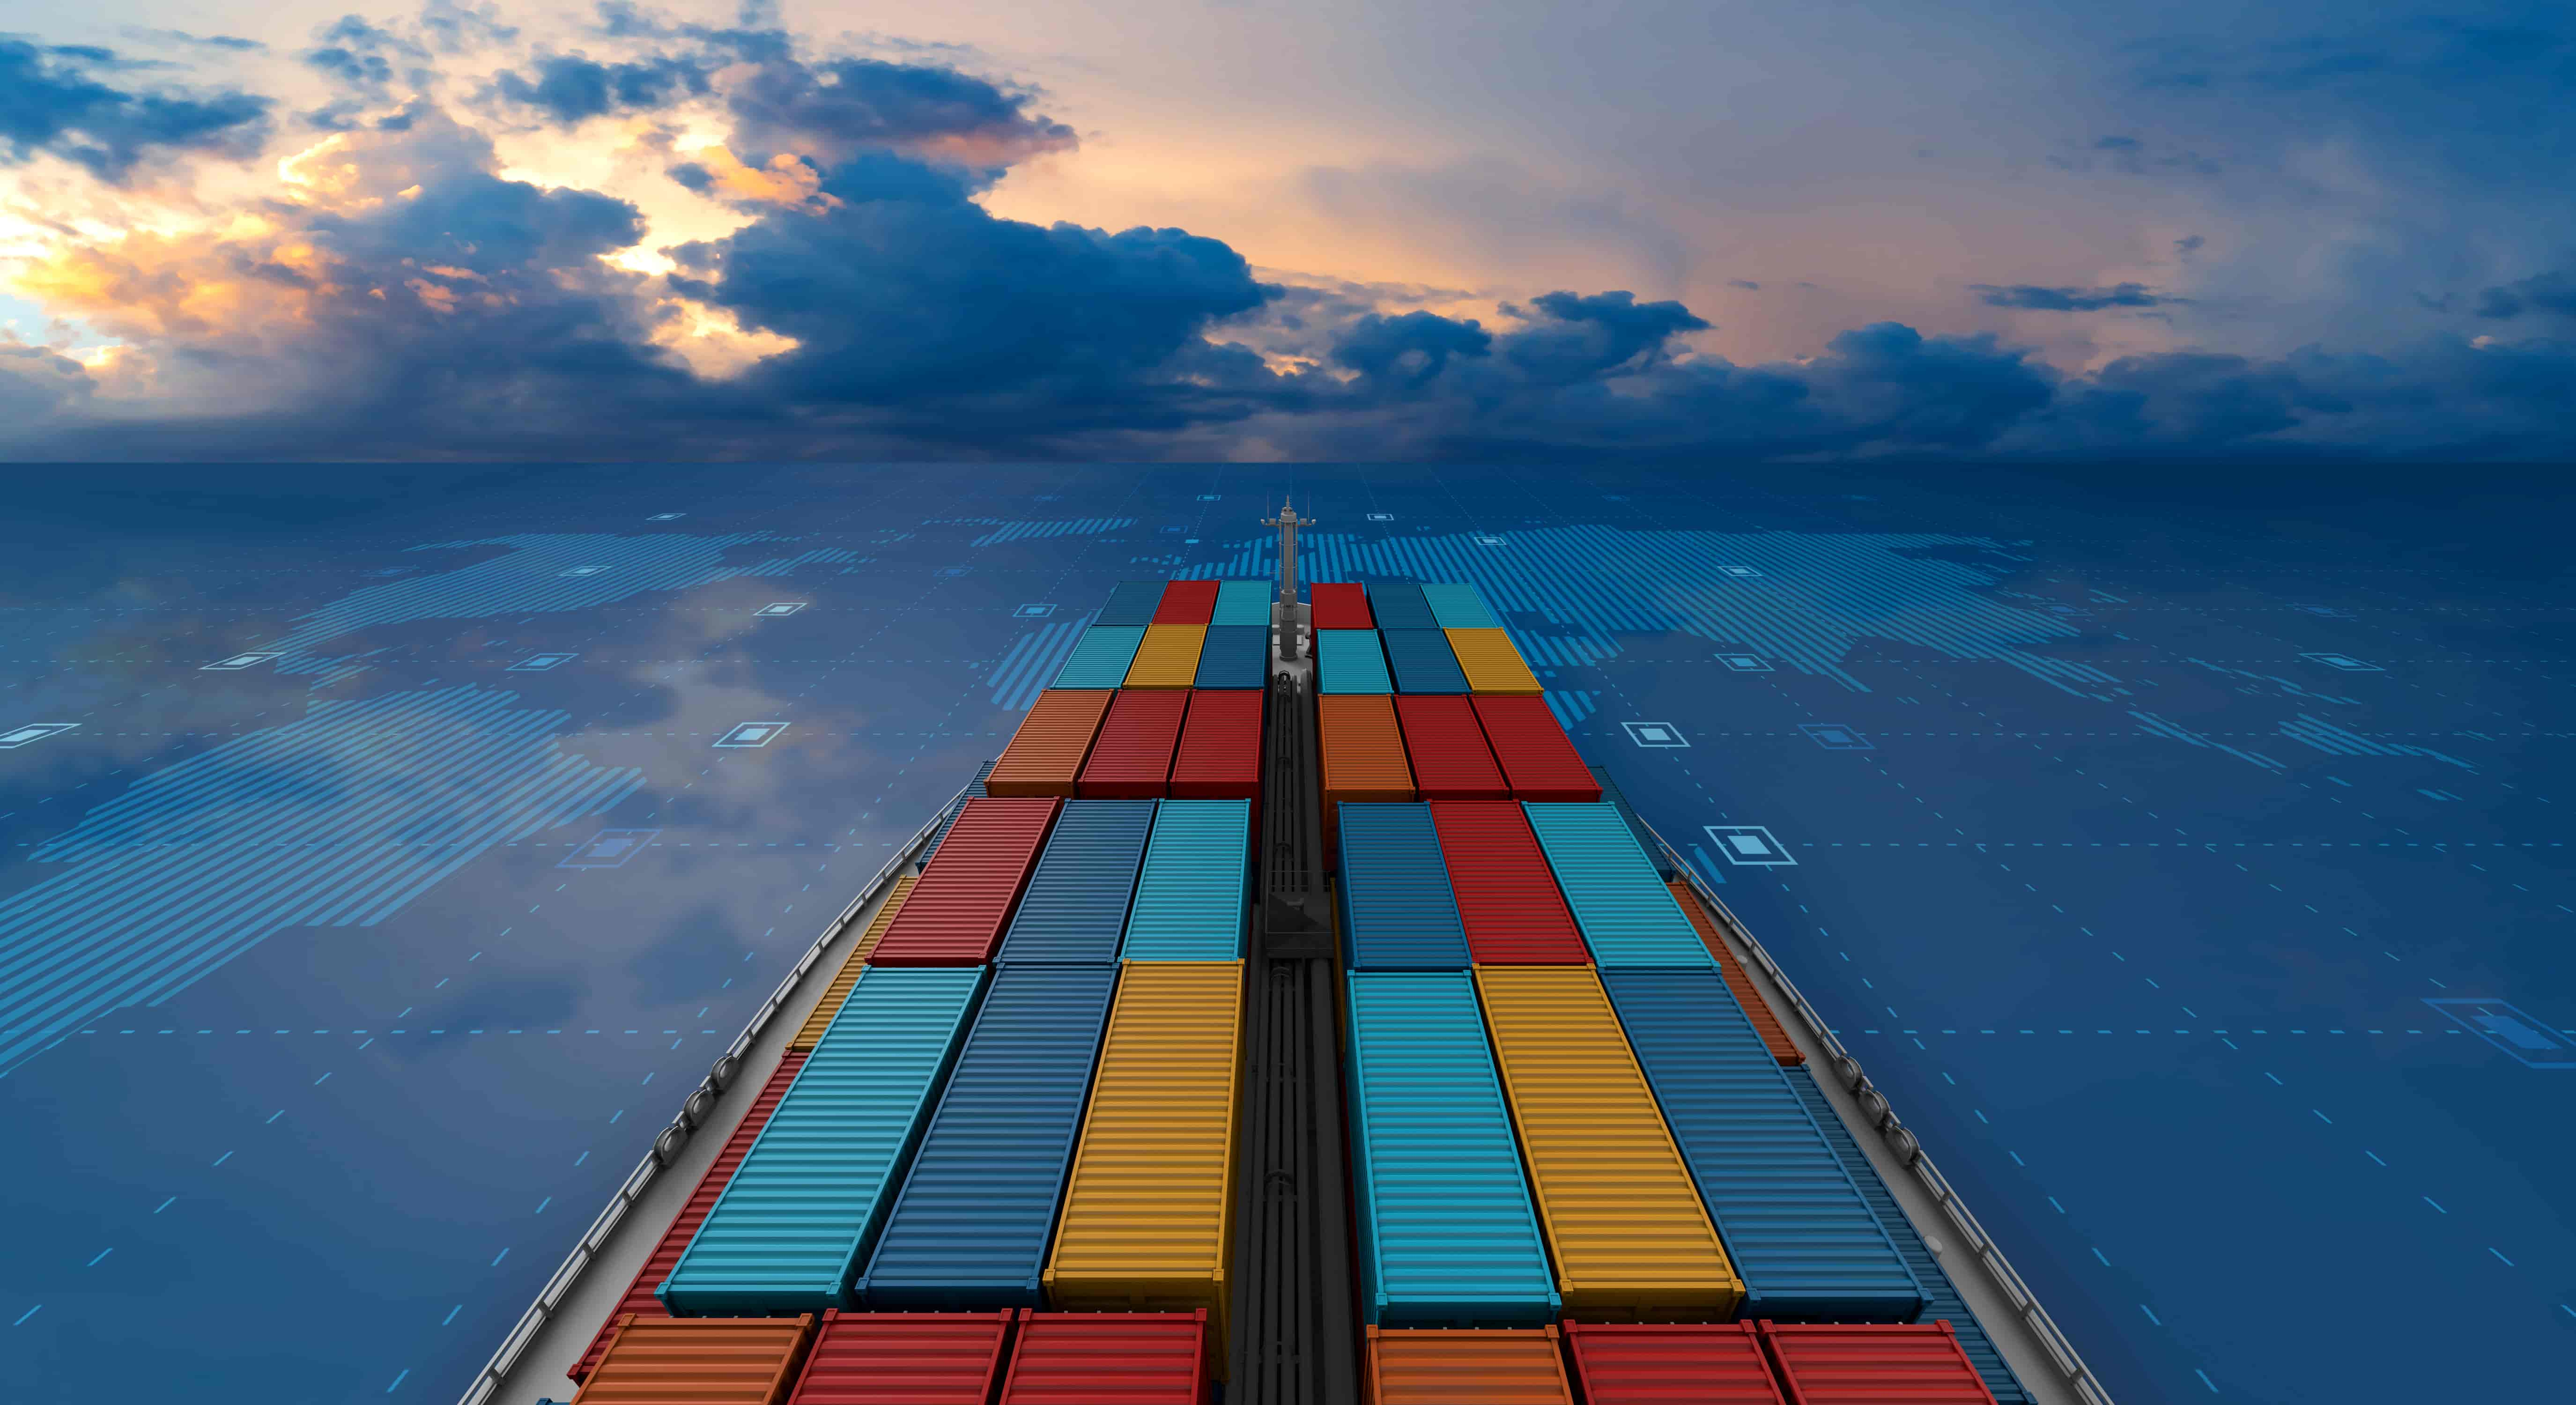 A huge ocean cargo ship laden with containers on a virtual sea